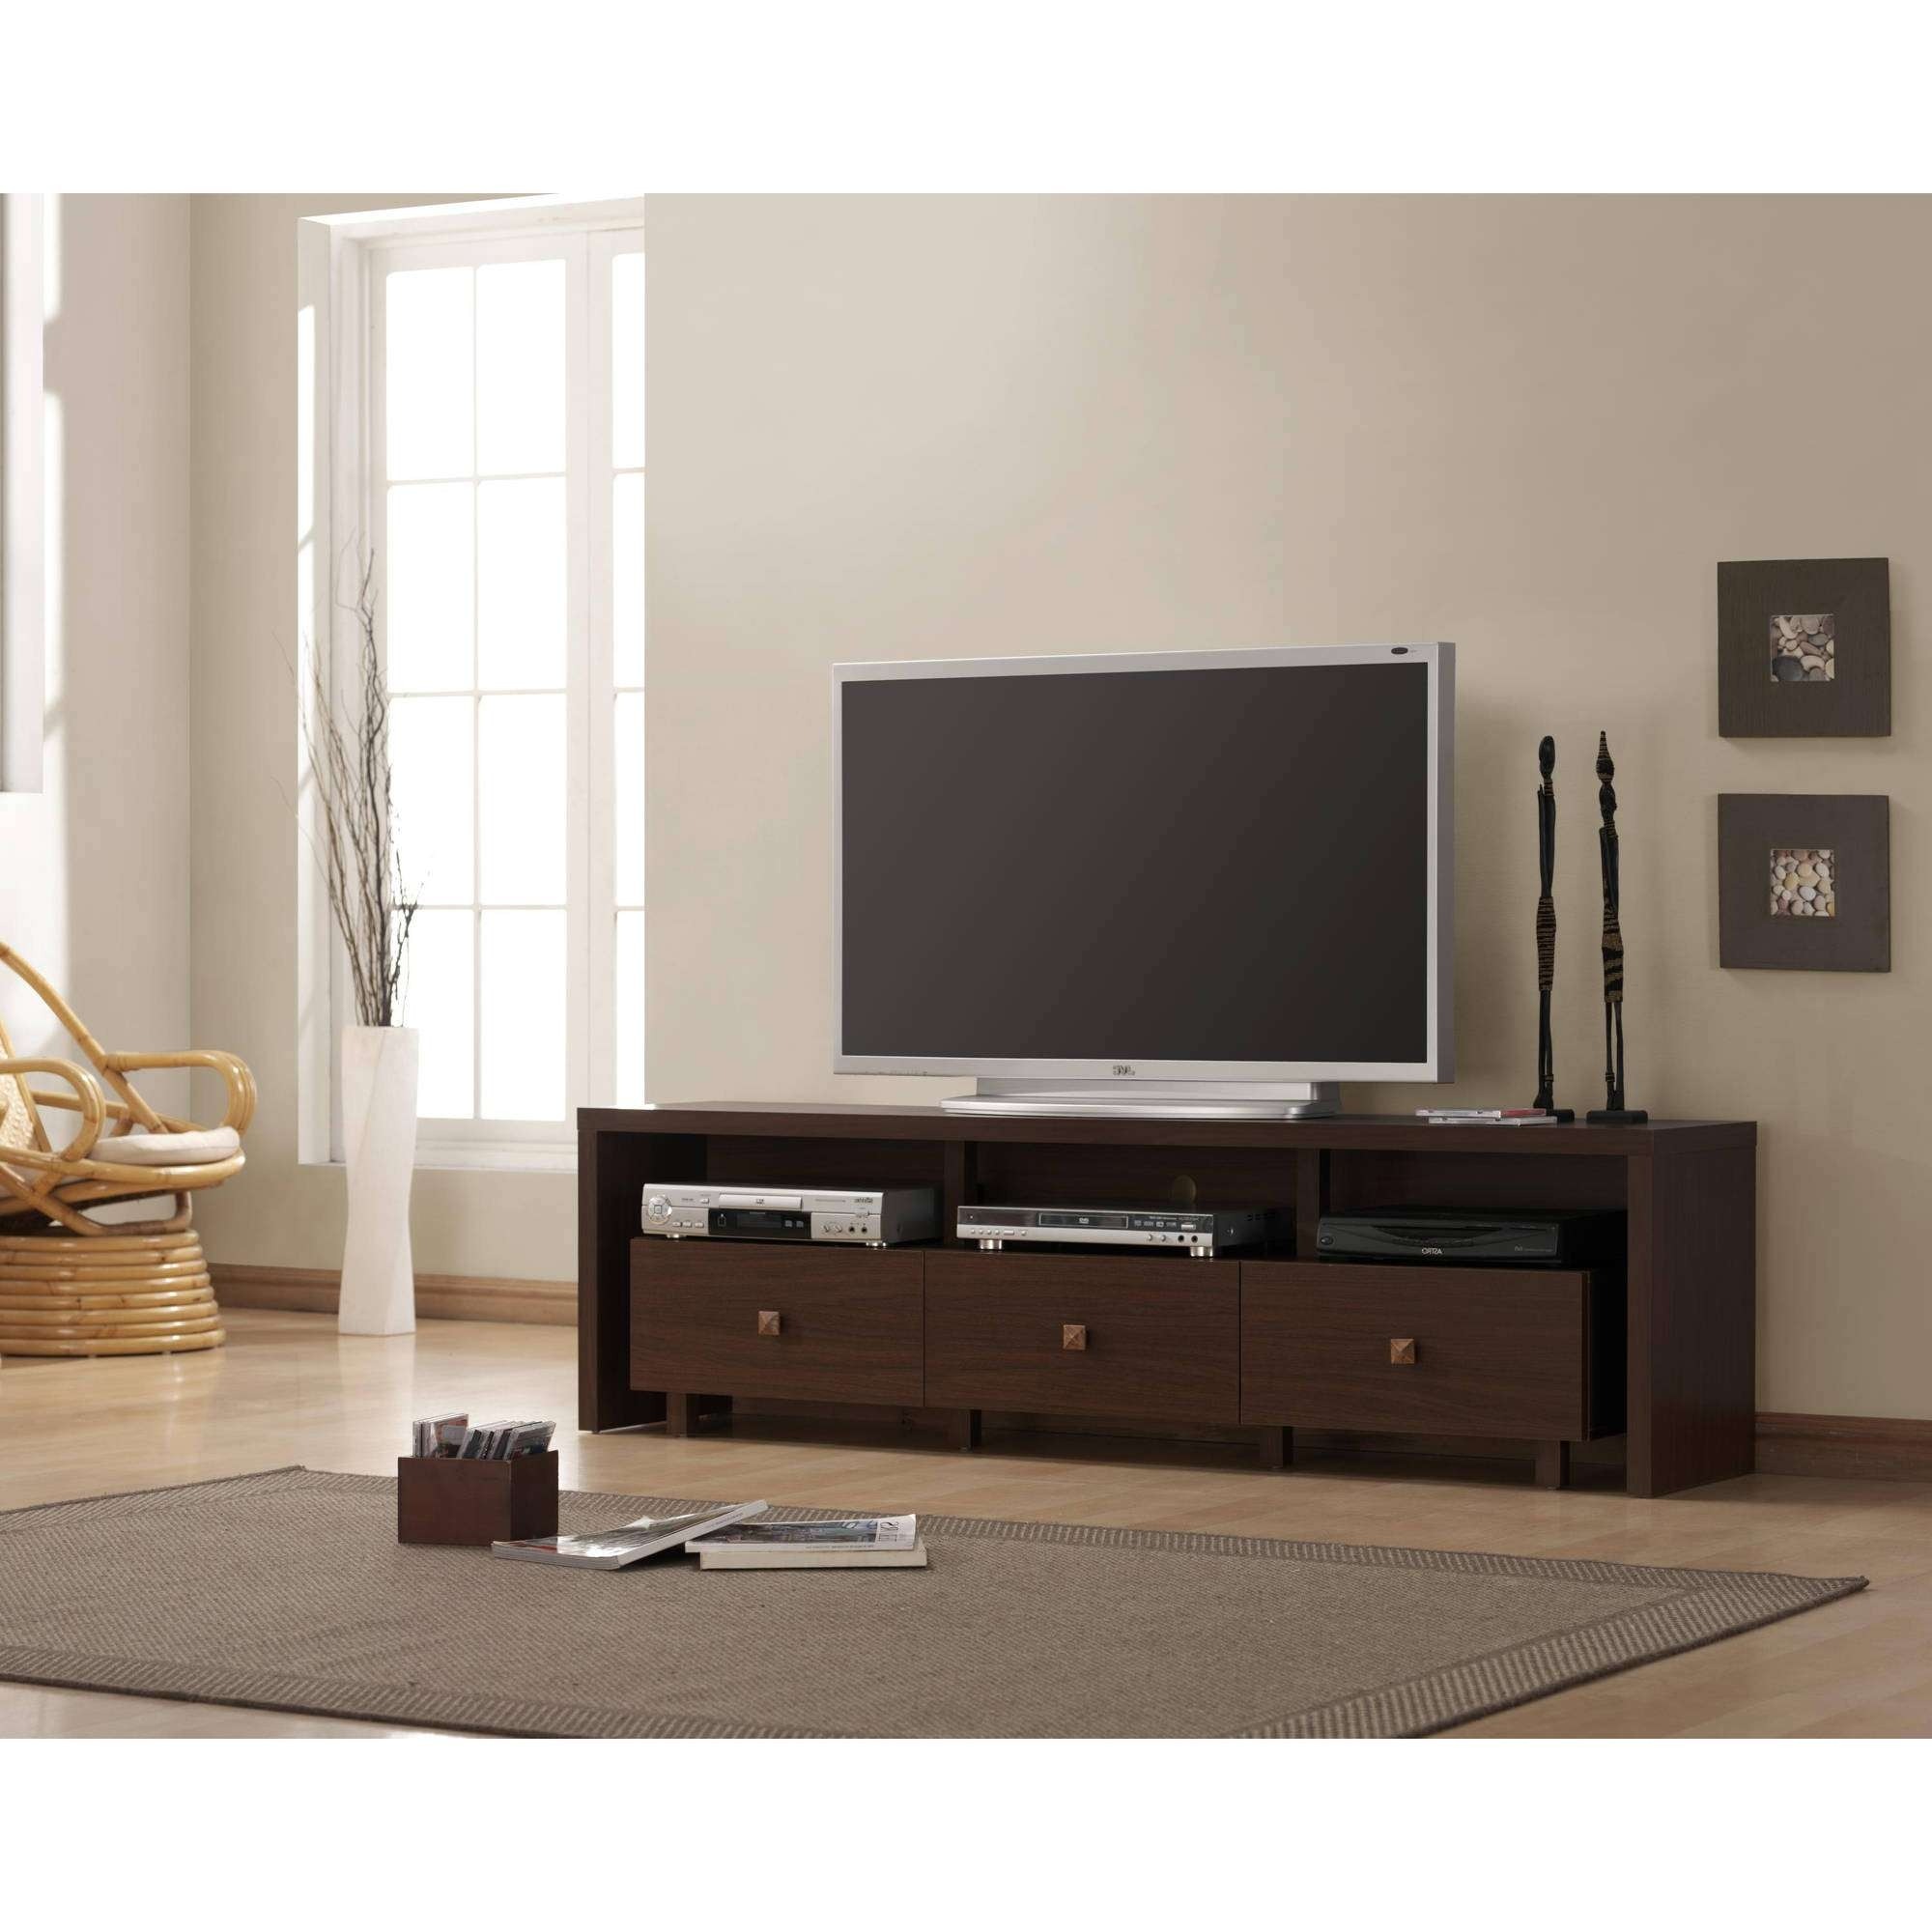 Inch Wide Sofa Sleeper Console Table60 Table Long Futon Beds Tv Intended For Long Tv Stands Furniture (View 10 of 15)